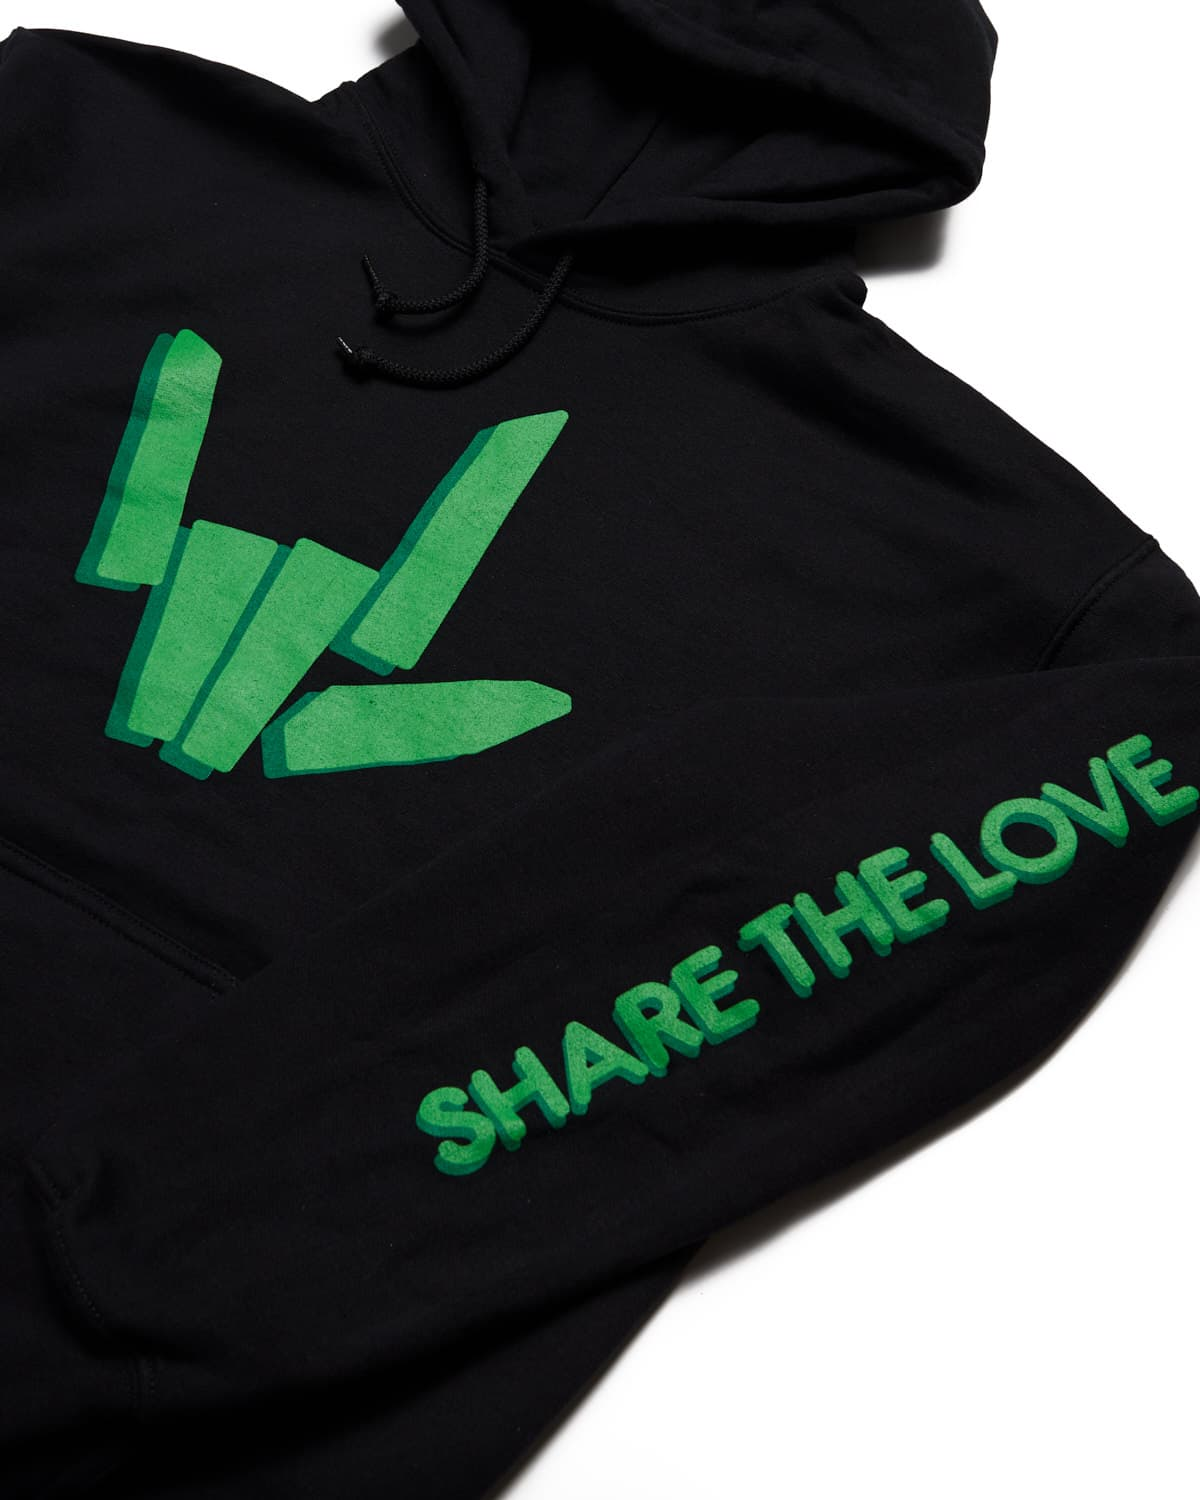 Share The Love Hoodie - Black